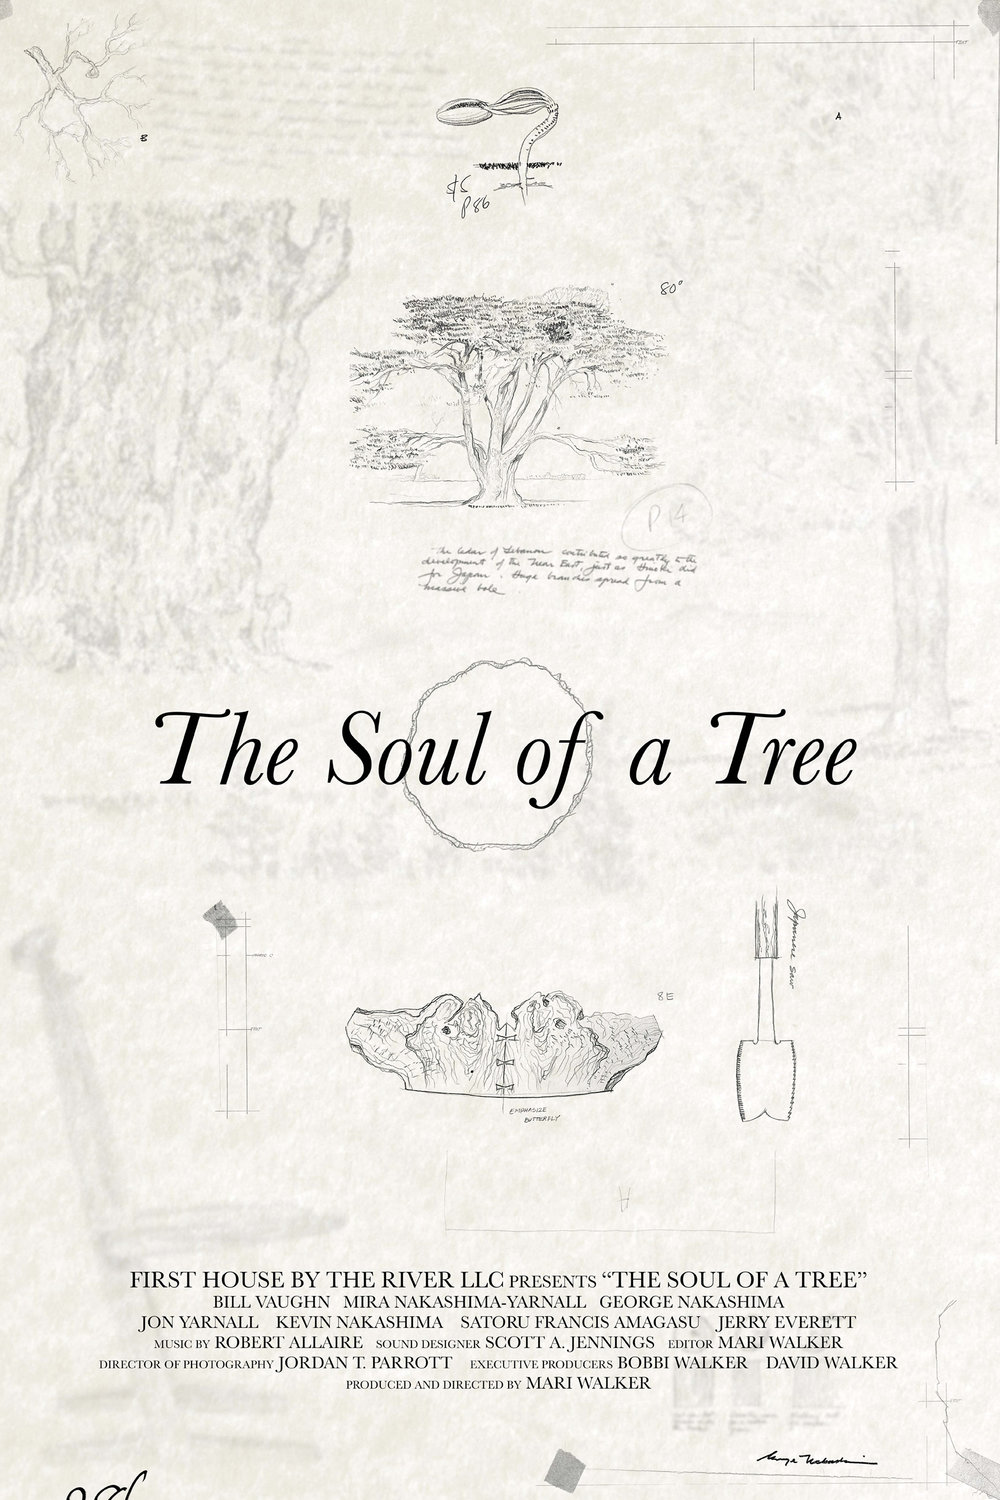 The Soul of a Tree Poster v5_compressed.jpg